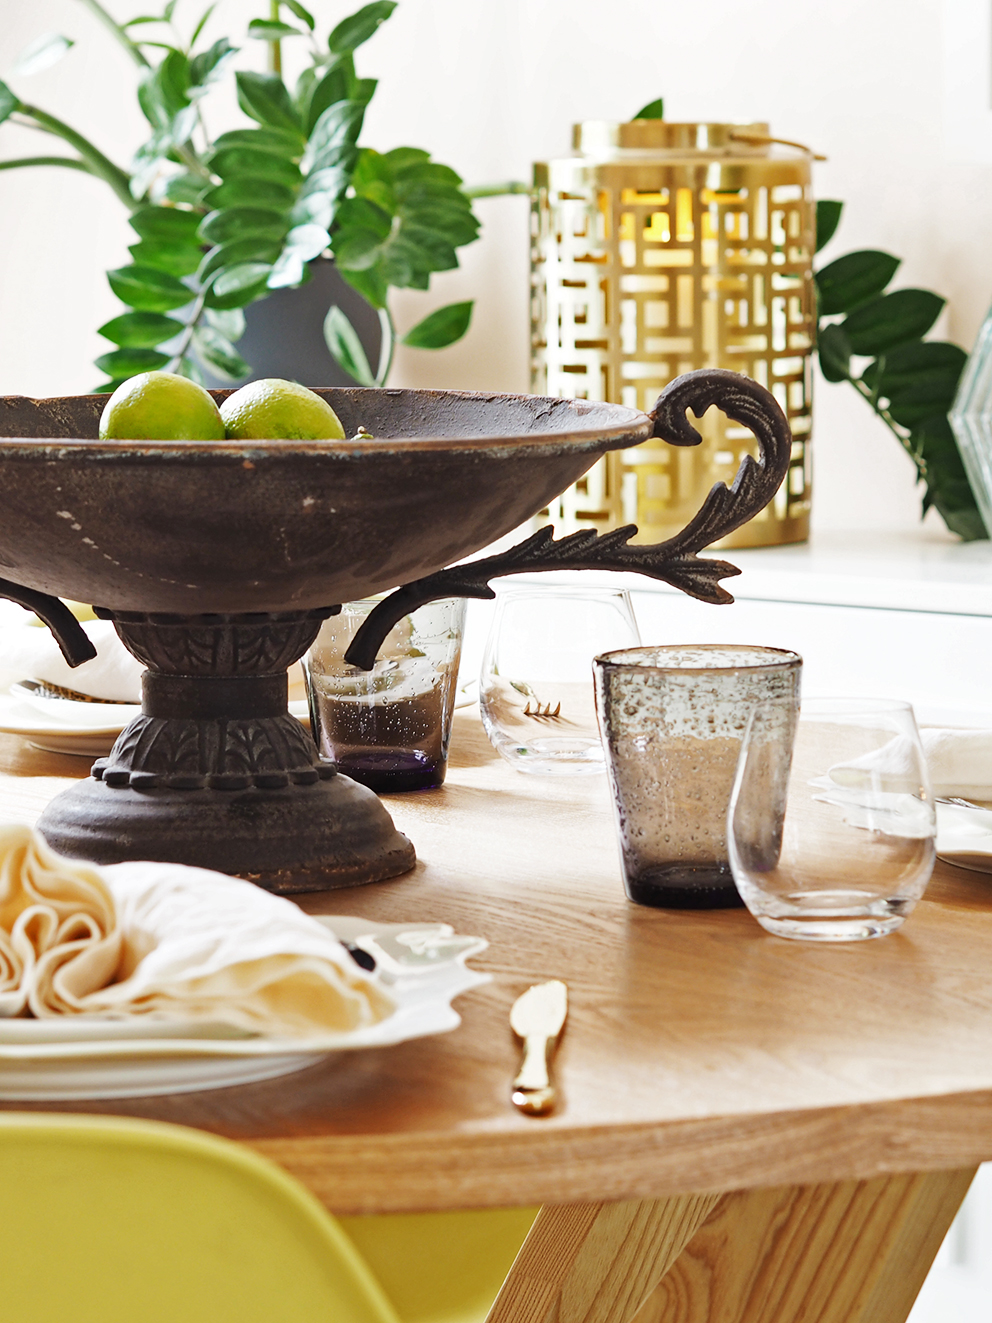 My Summer Dining Room - French For Pineapple Blog - ornate footed antiqued bowl on round wooden dining table